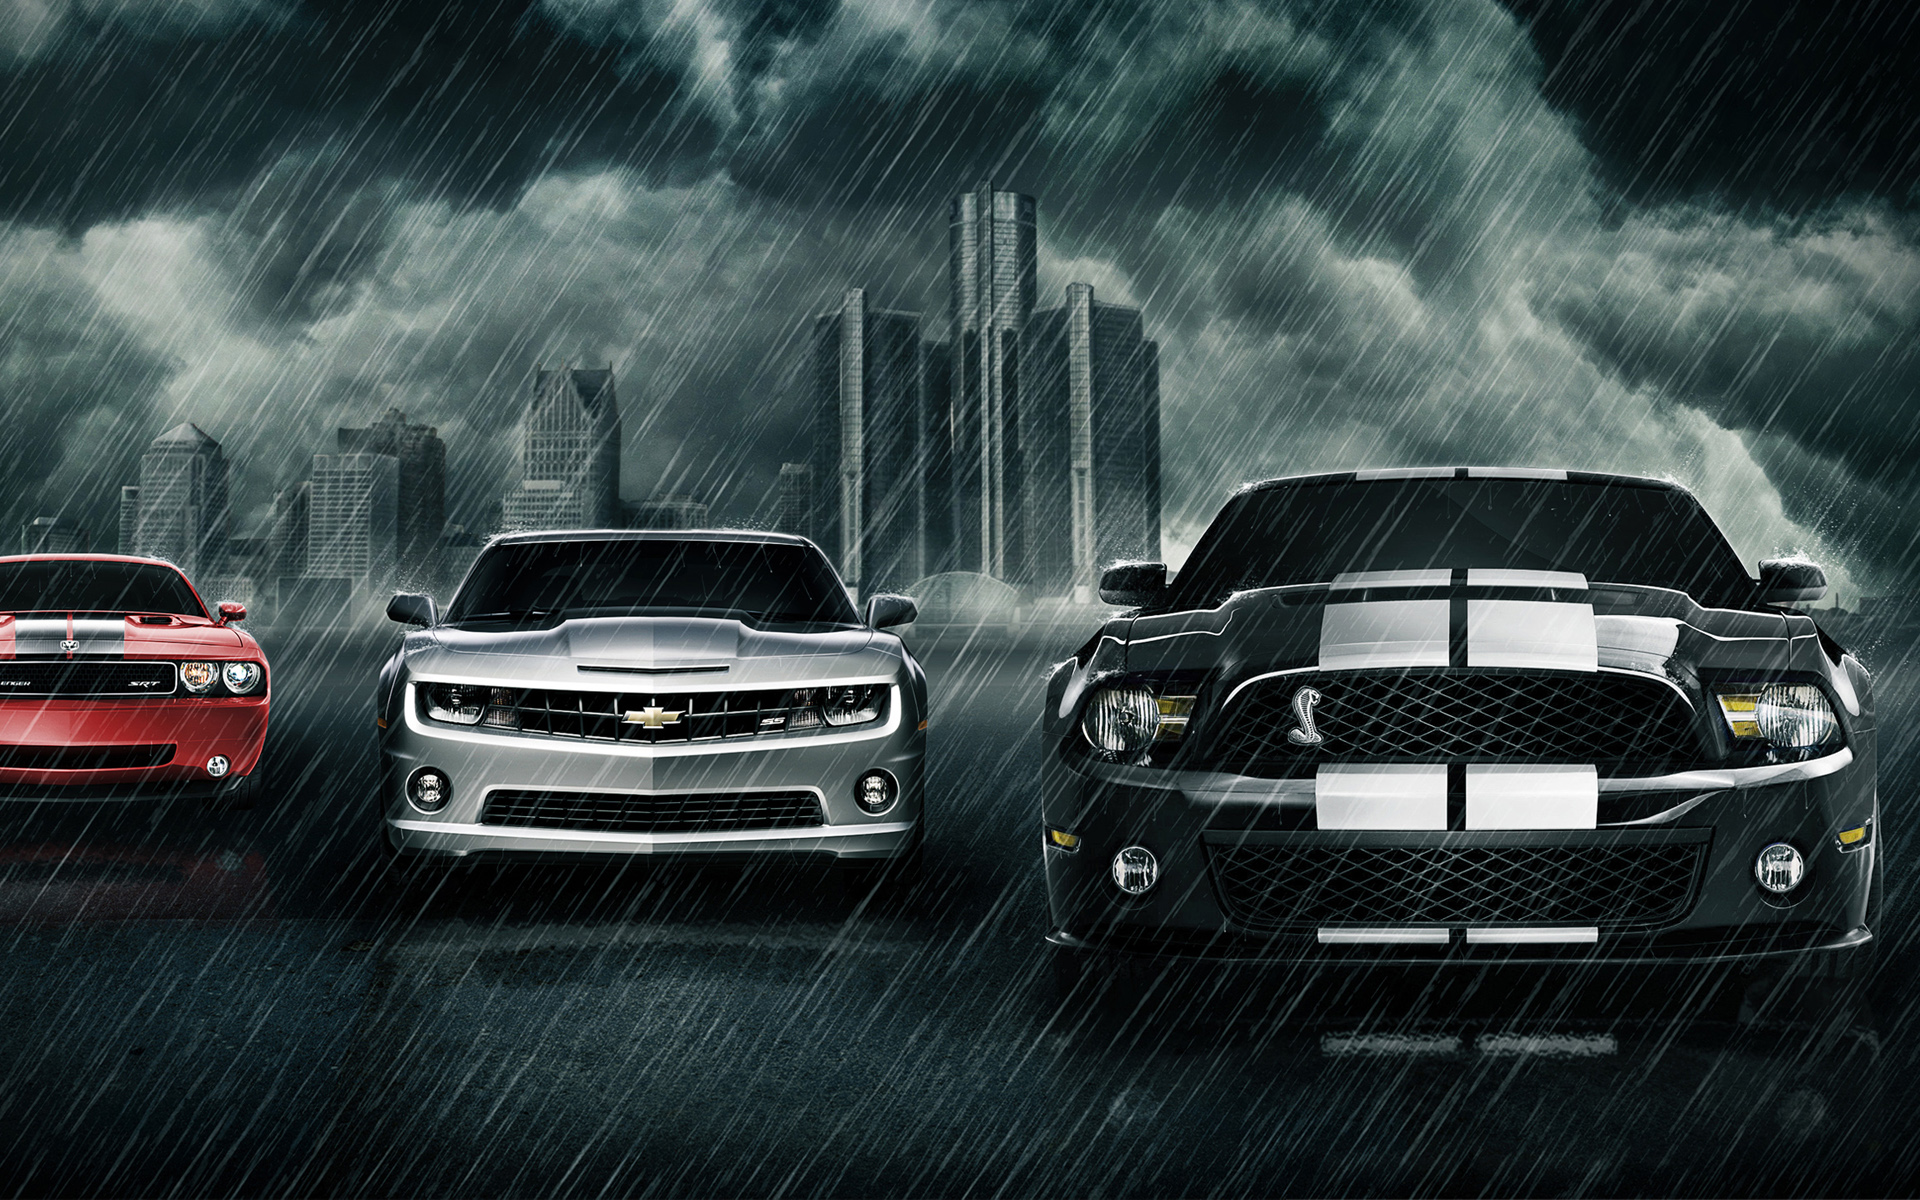 Hd wallpapers of cars - Muscle Cars Wallpapers Hd Wallpapers